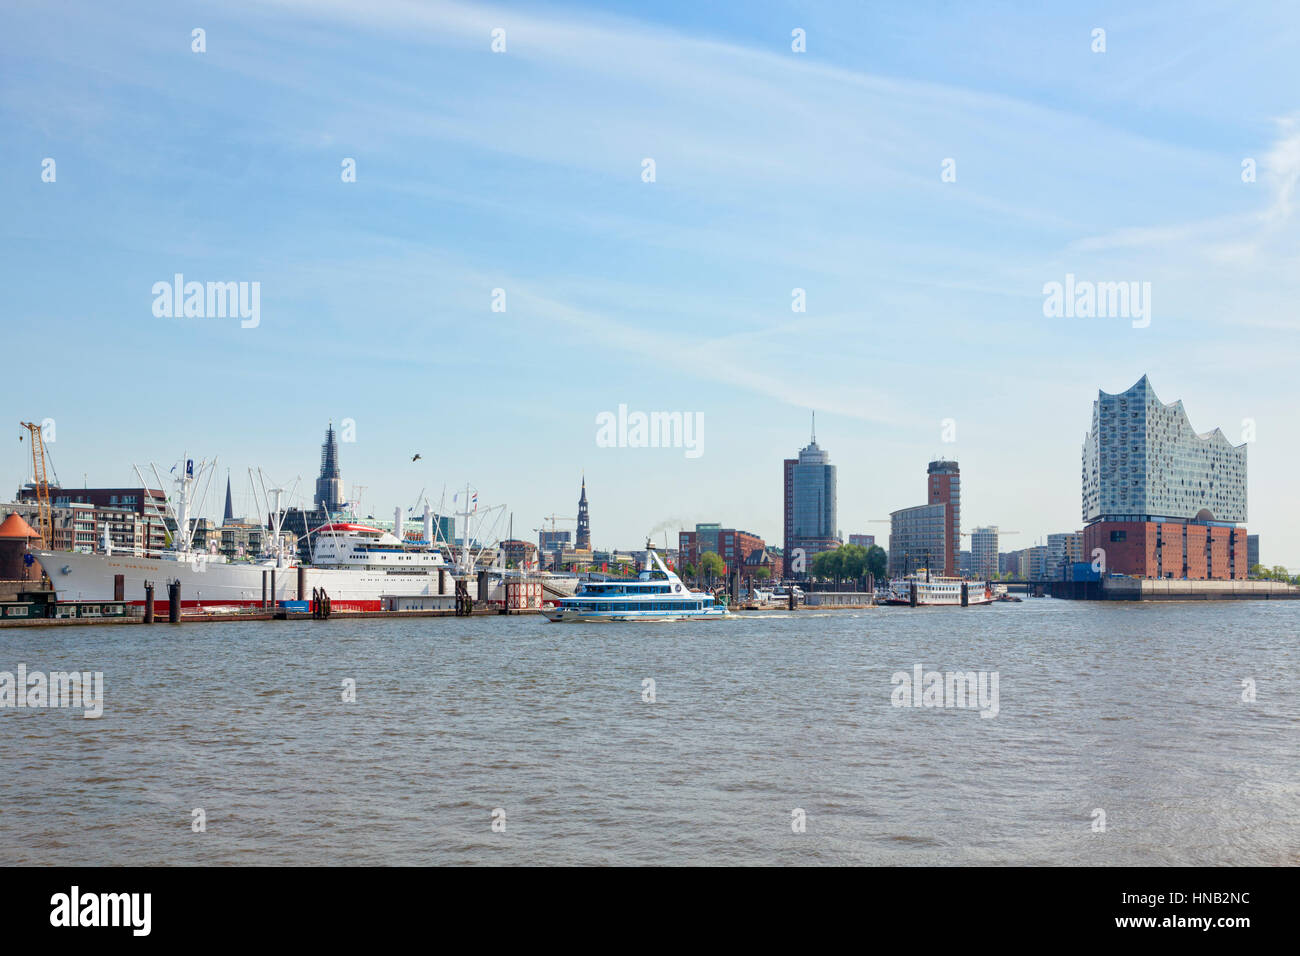 Hamburg, Germany - May 19, 2016: Waterfront from St pauli piers with museum ship Cap San Diego to HafenCity quarter - Stock Image